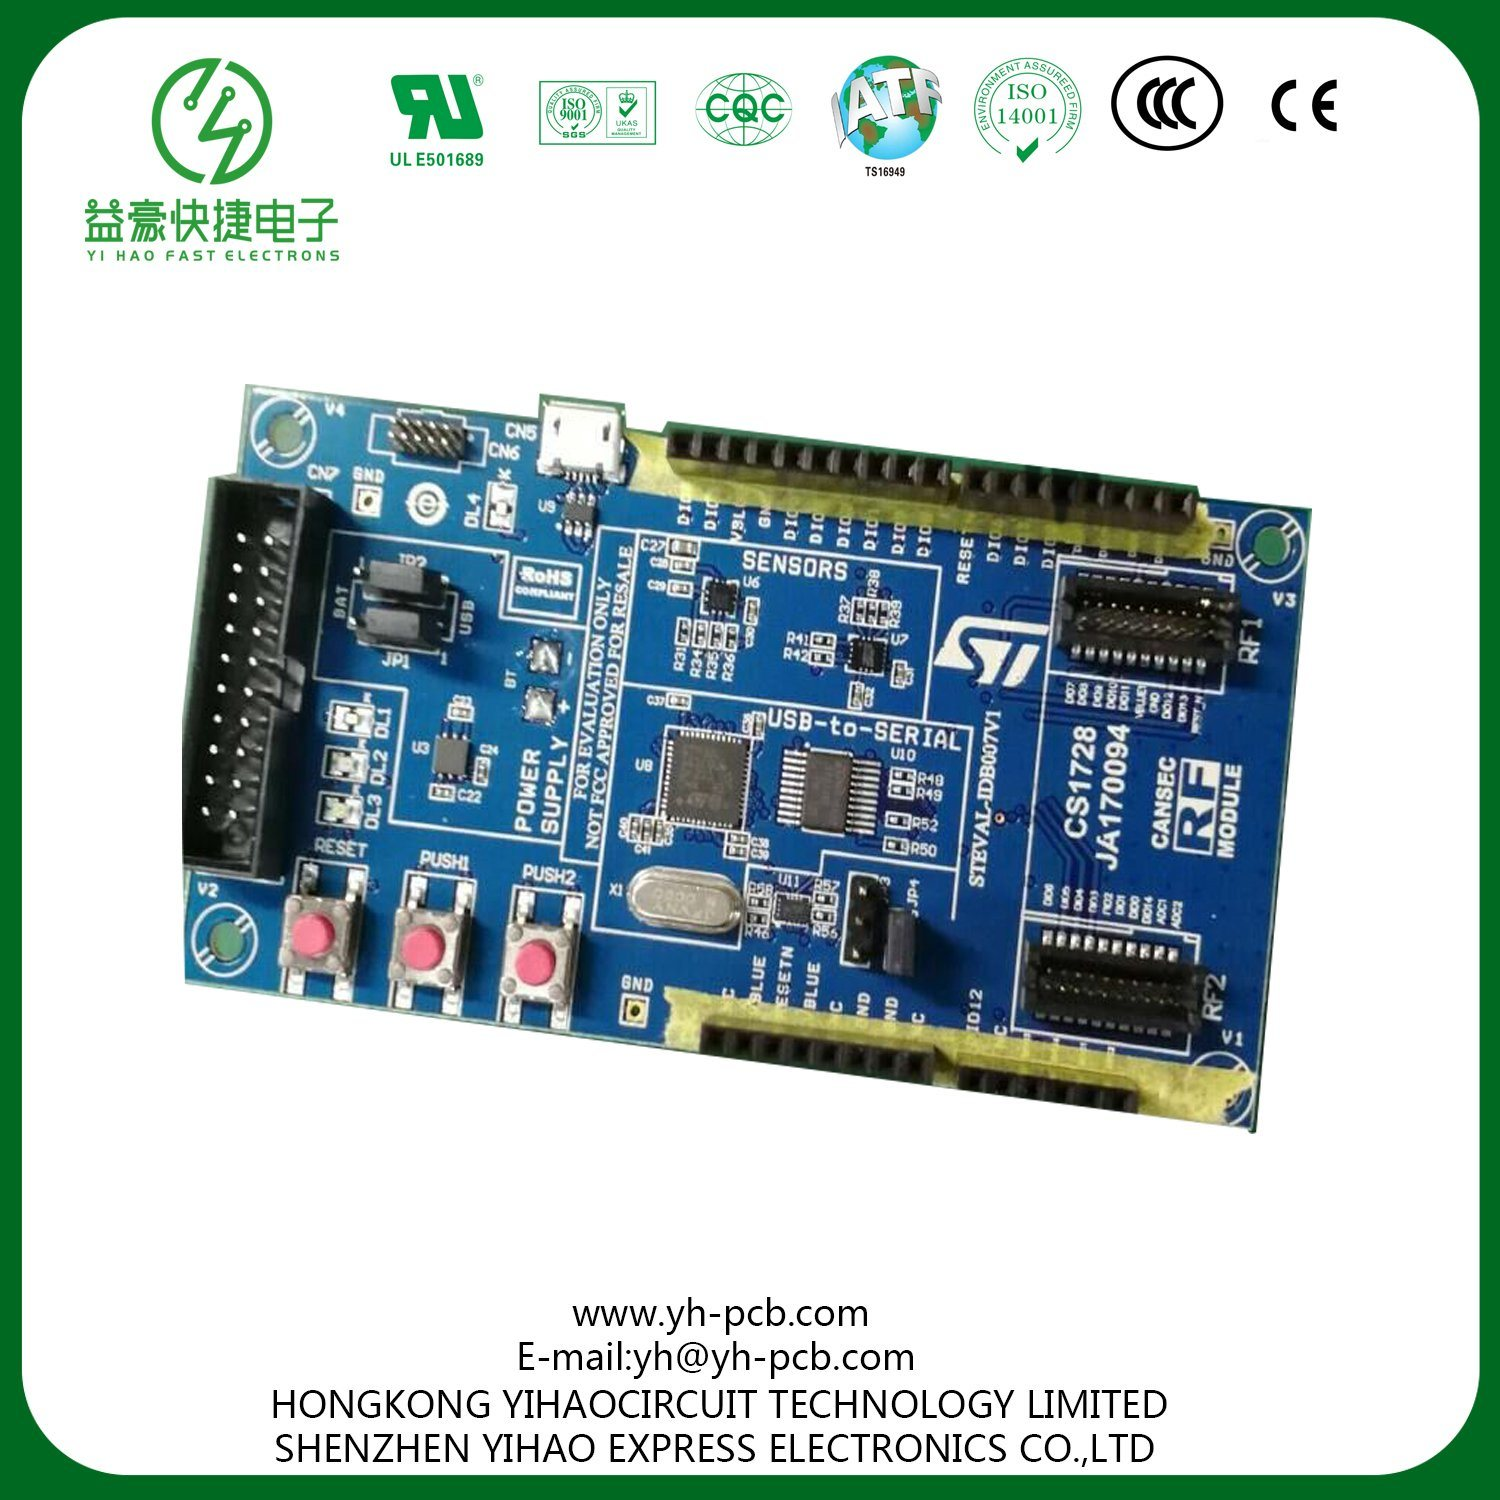 Wholesale Printed Pcb Assembly Buy Reliable Circuit Boardrf4 Oem Multiplayer Board Medical Armarium Pcba